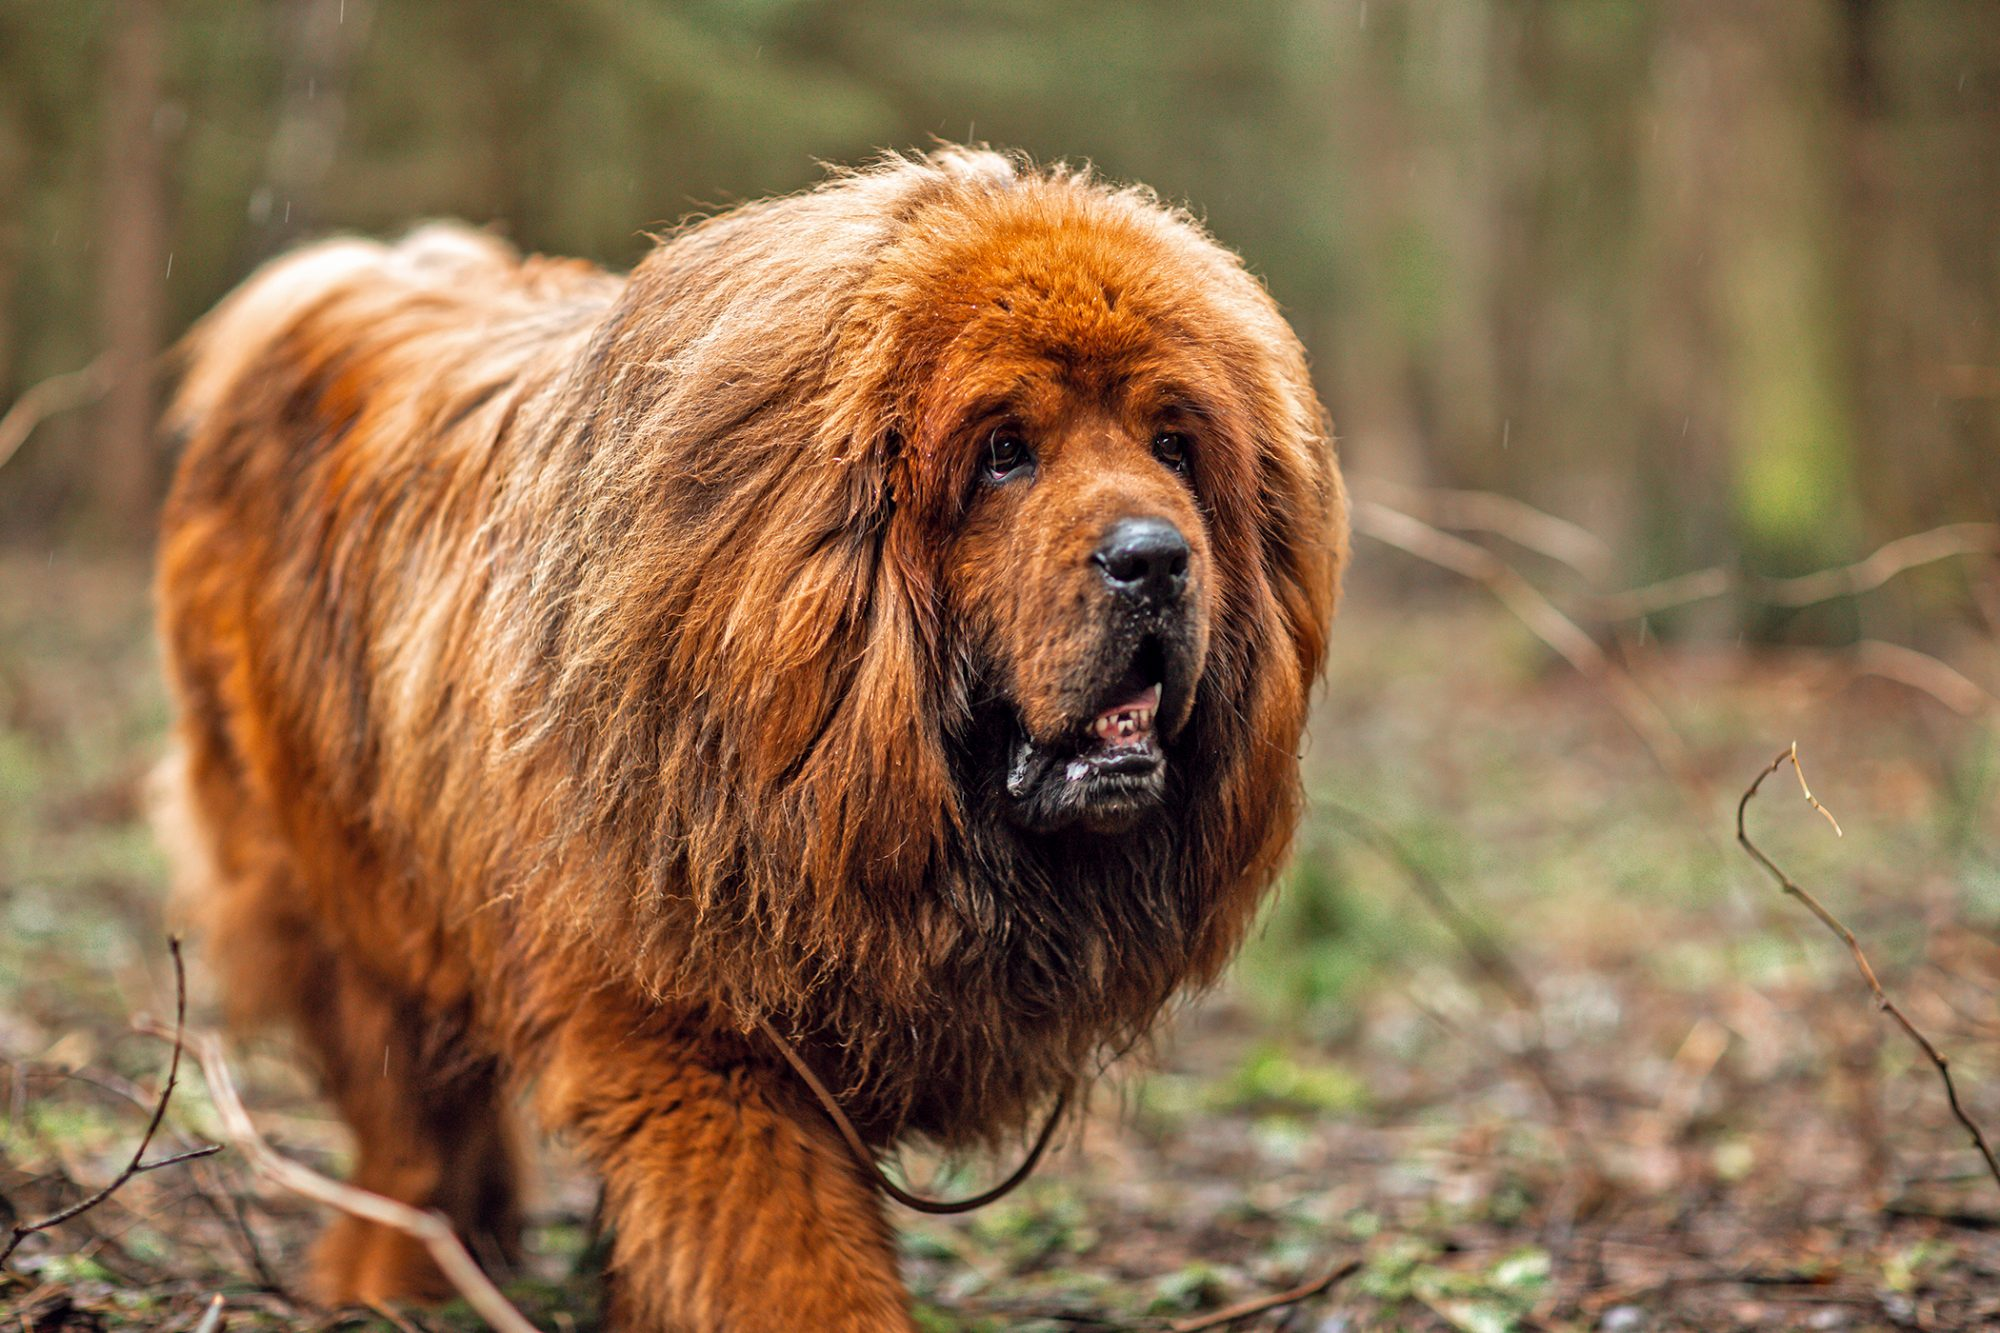 Red tibetan mastiff walks through brush